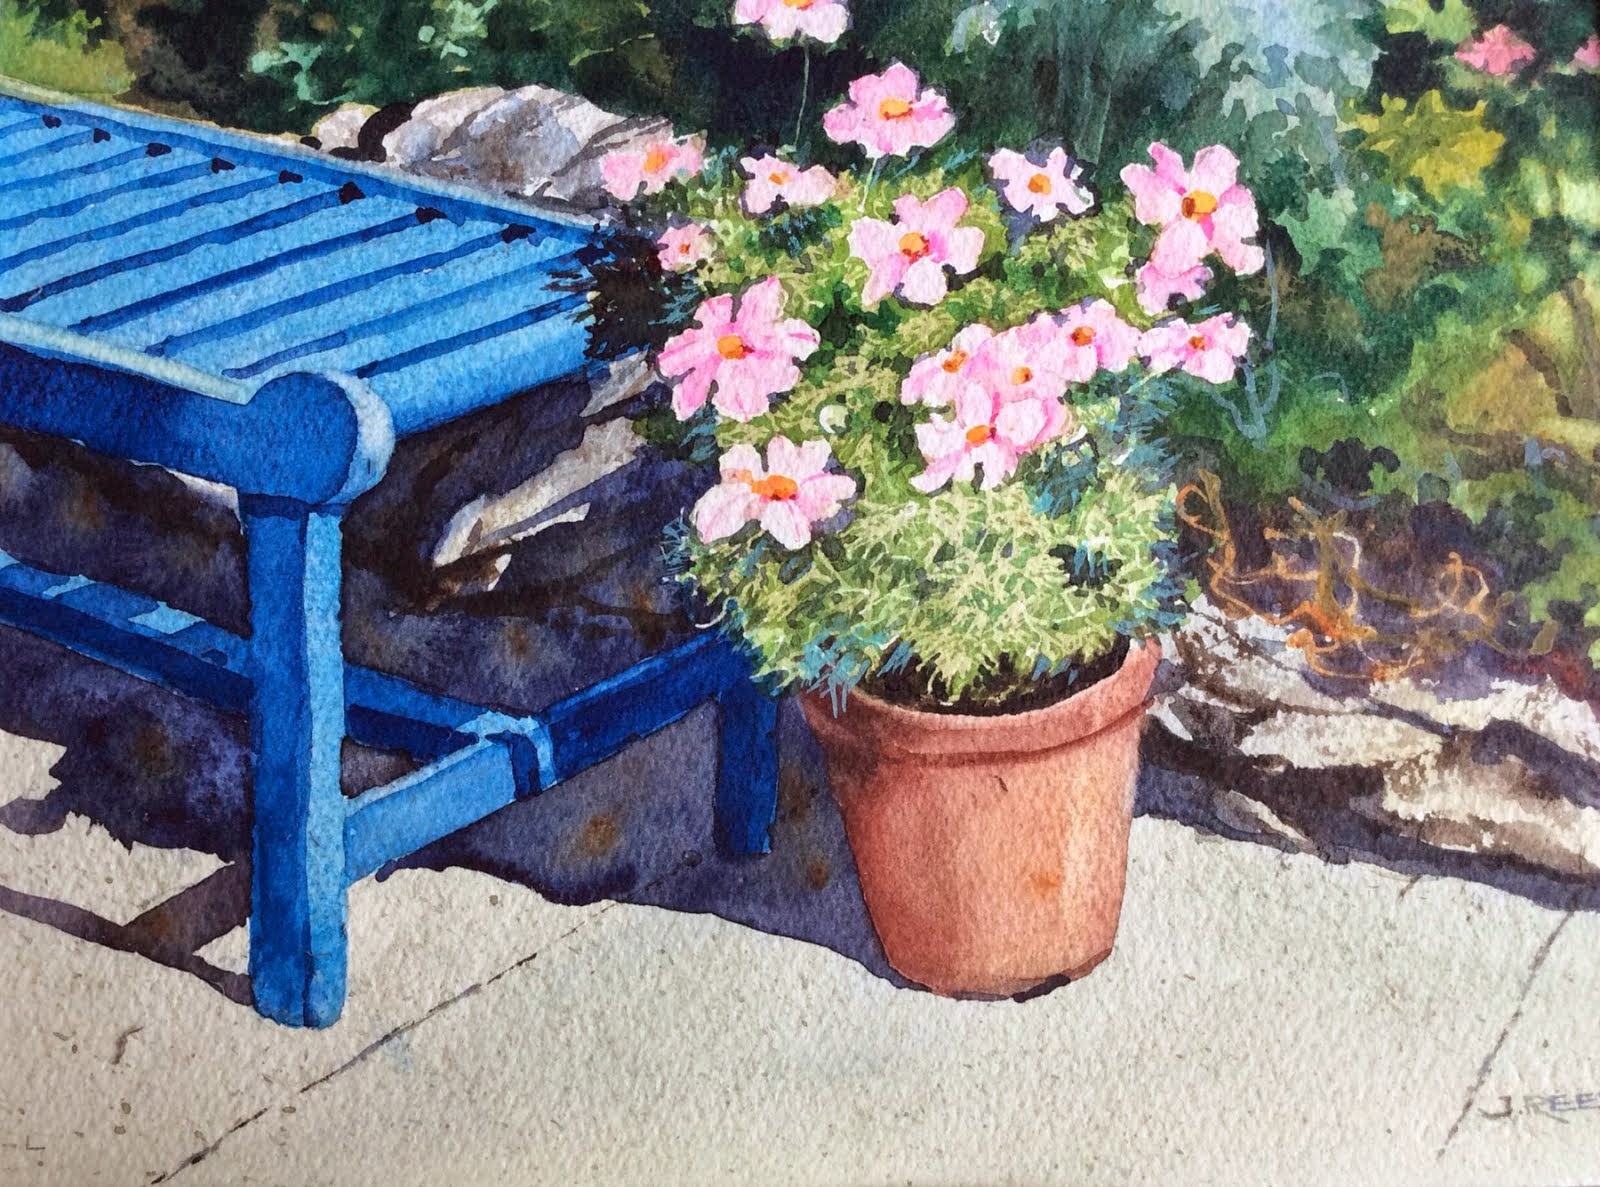 """Blue Bench"" by Joan Reeves"